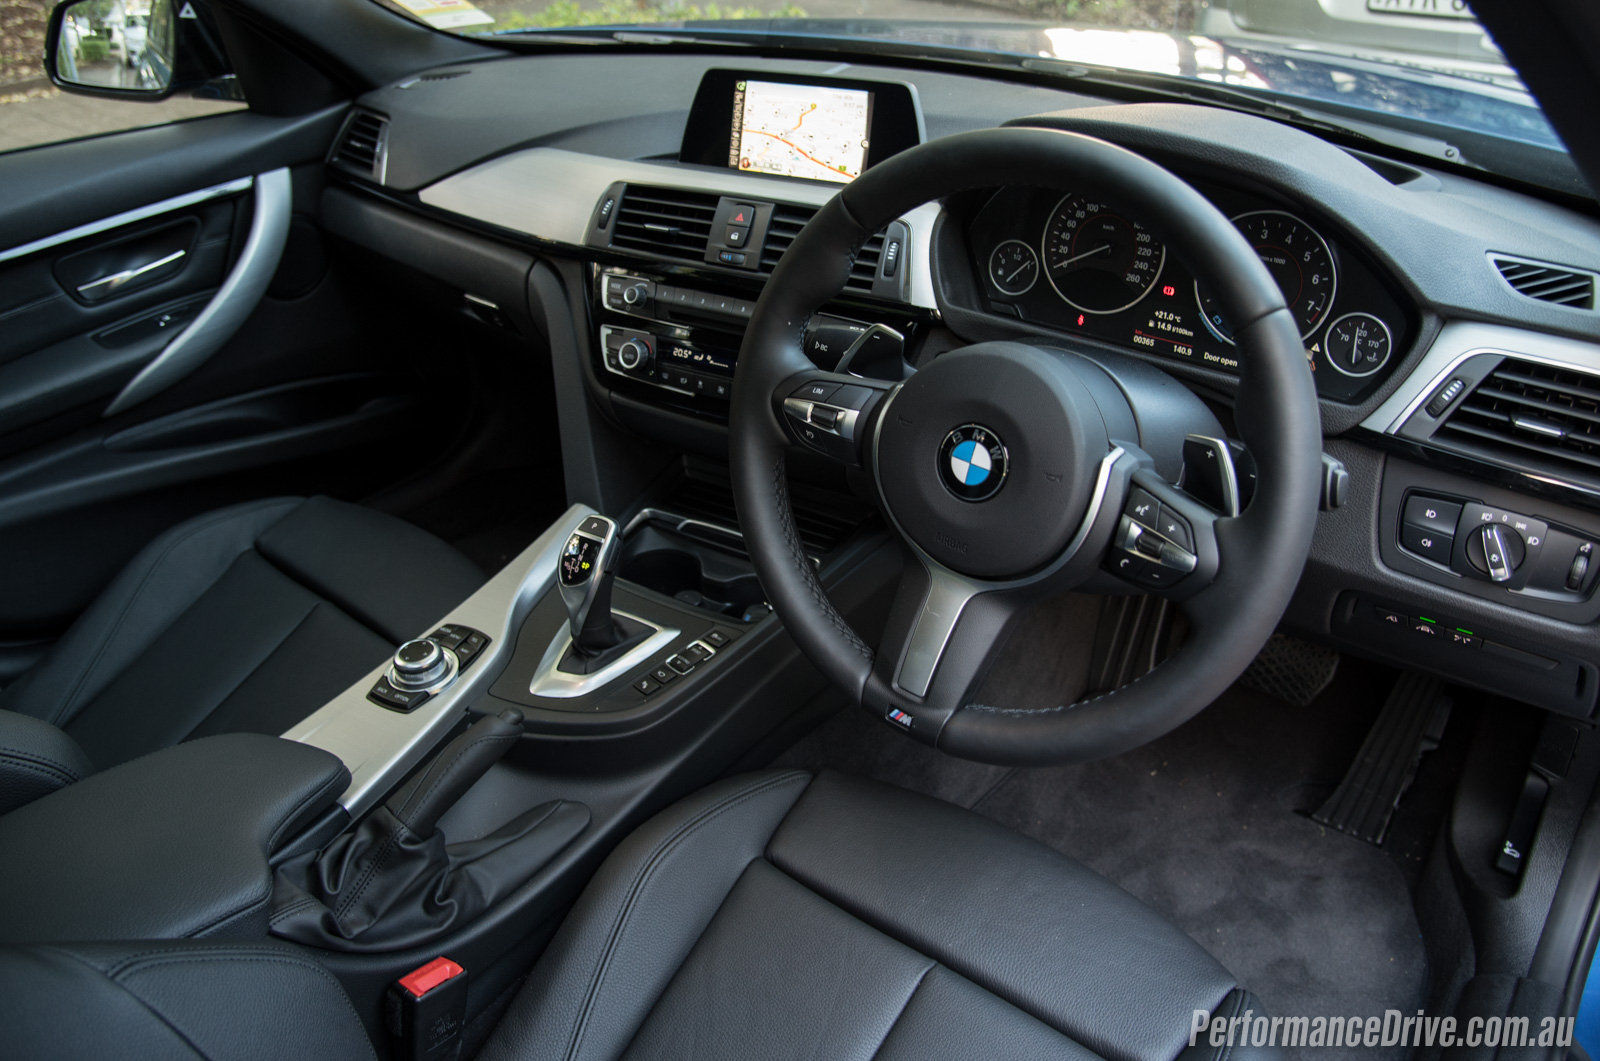 bmw 320i interior review bmw 320 2014 allgermancars net interior abs chromiu accessories for. Black Bedroom Furniture Sets. Home Design Ideas